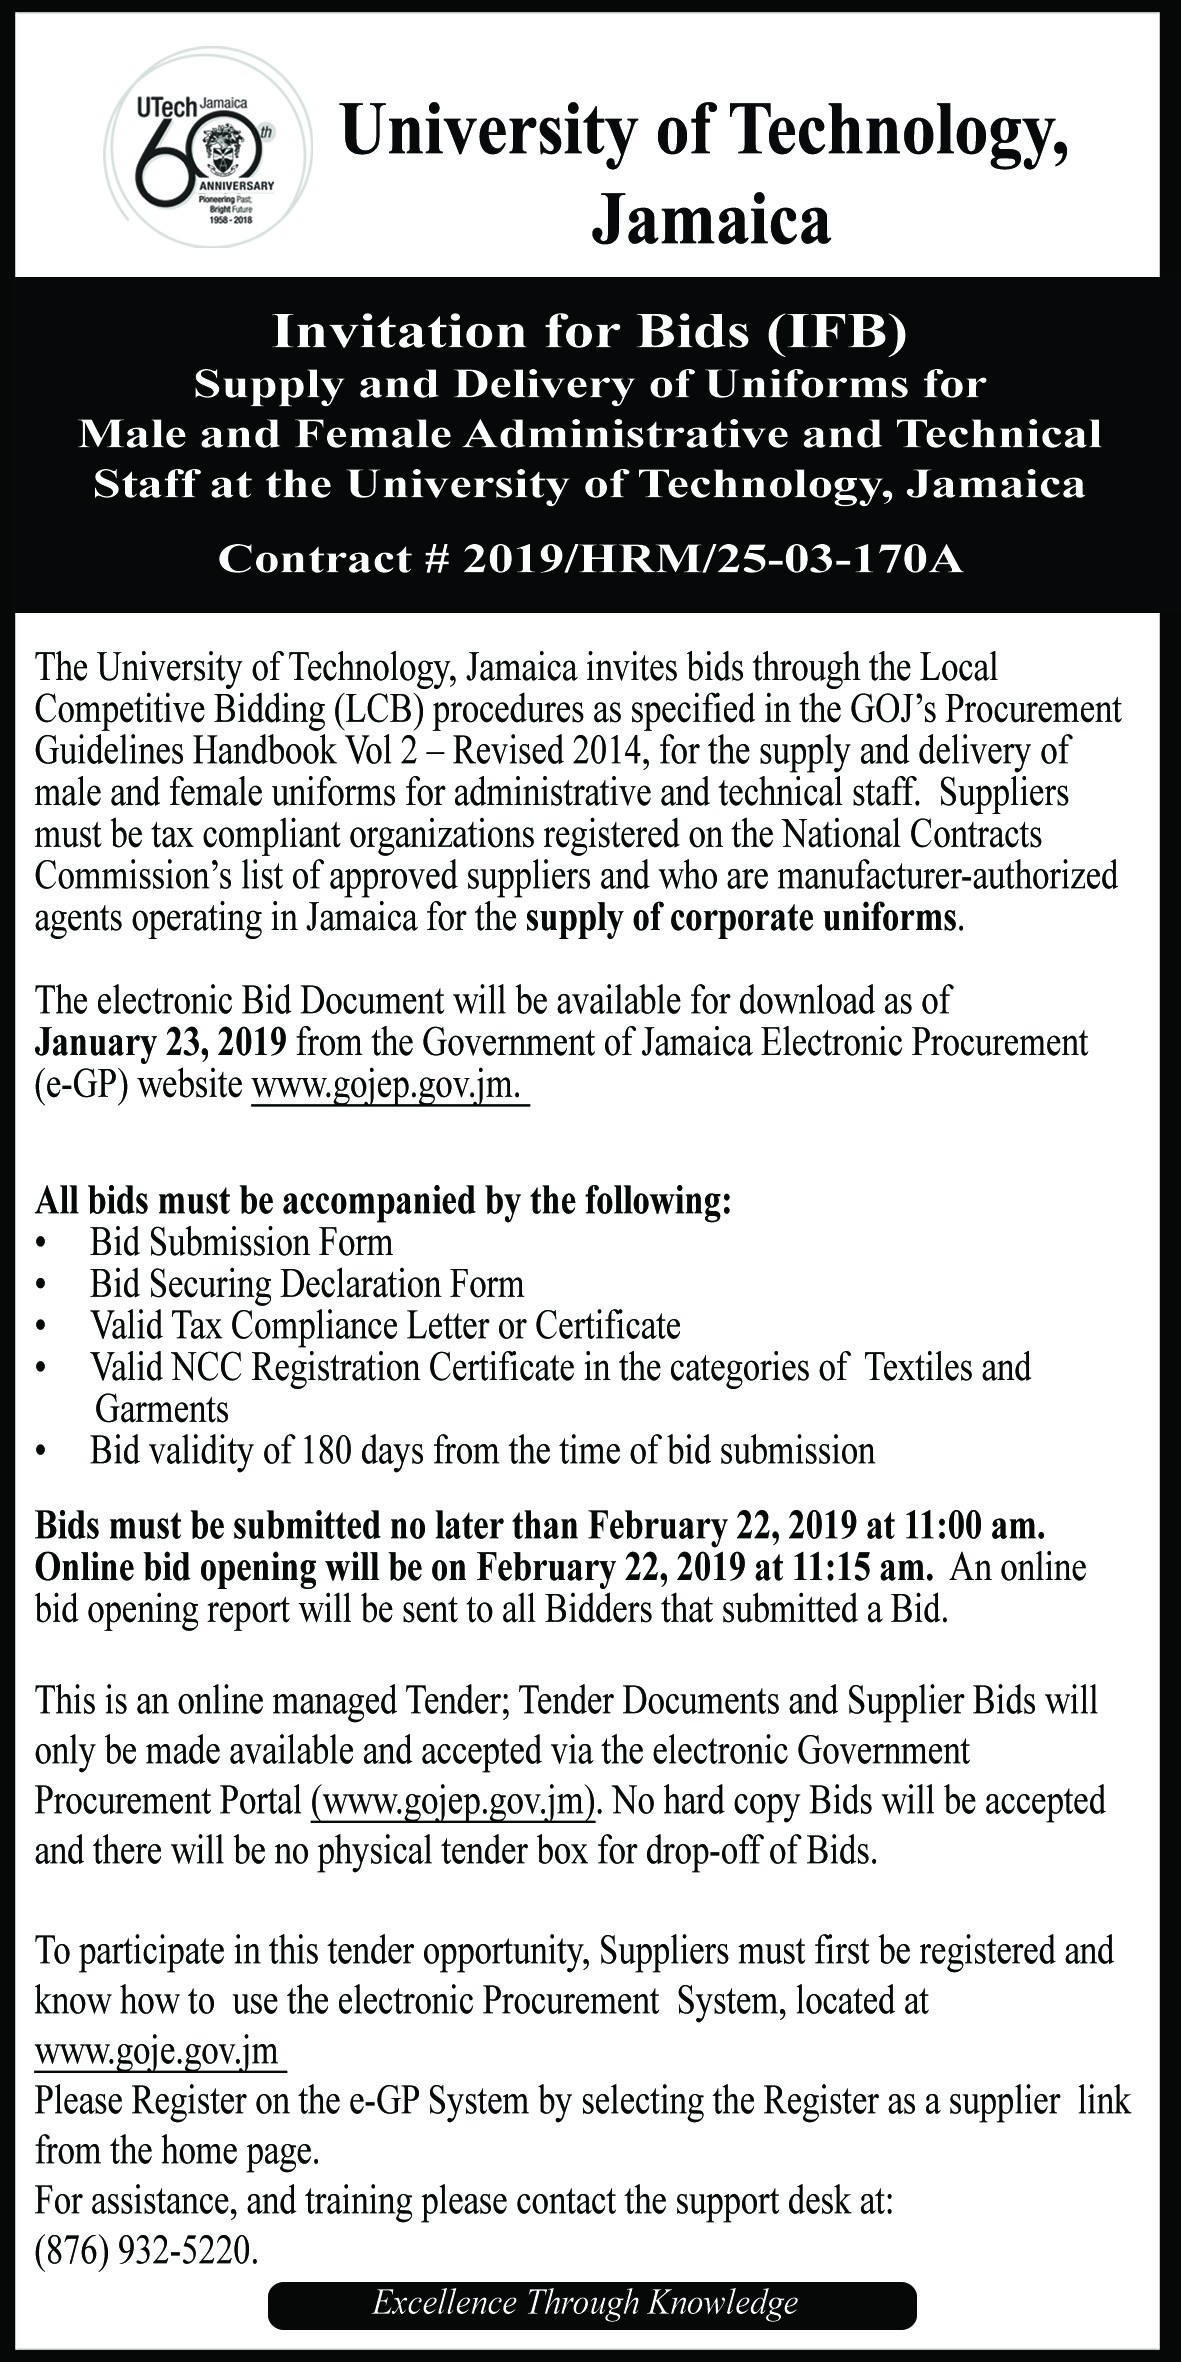 Invitaton For Bids -  Supply and Delivery of Uniforms